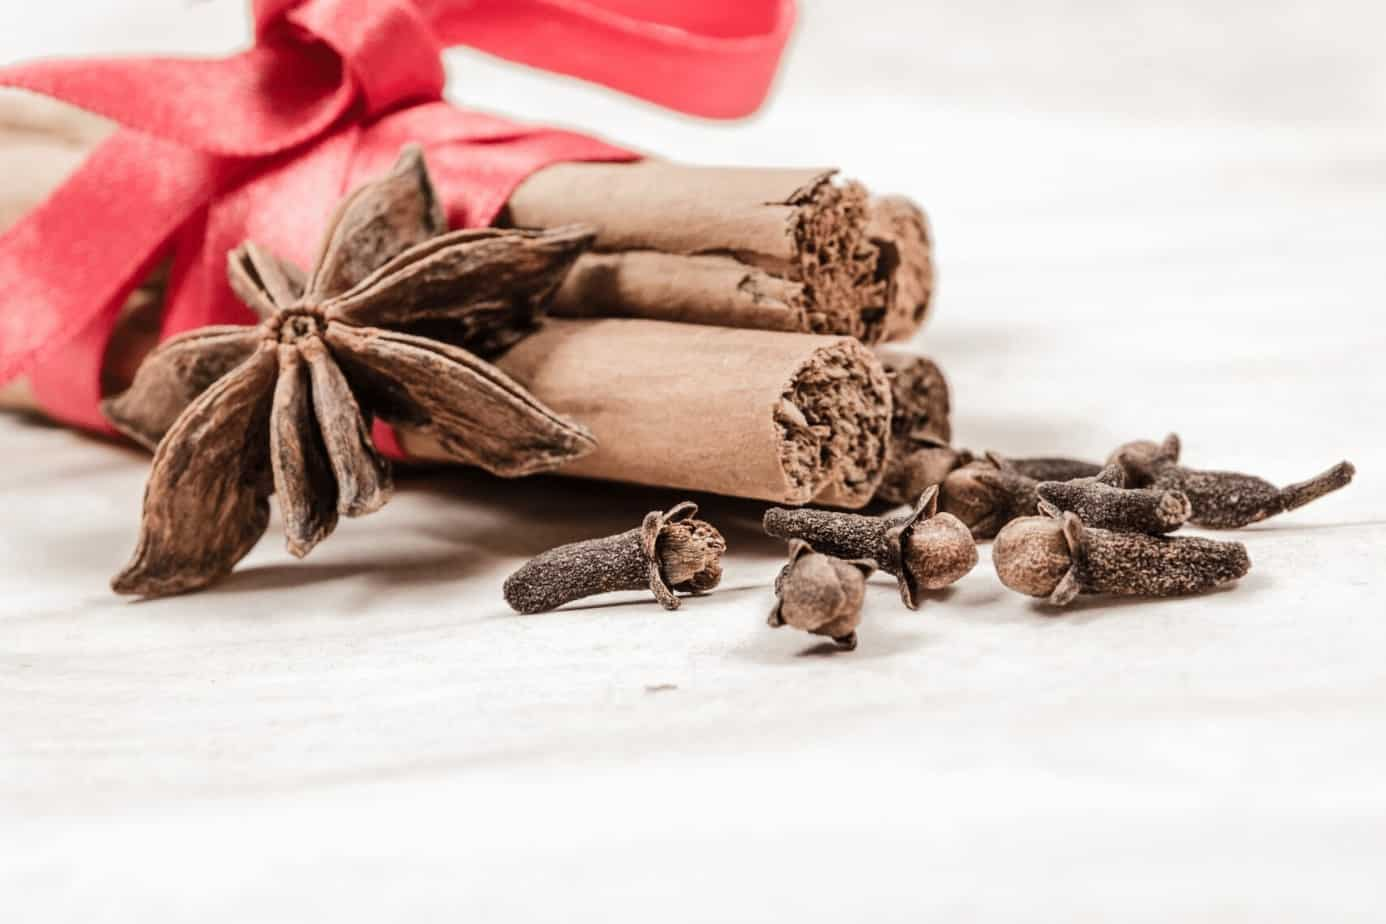 cinnamon sticks and cloves wrapped in with a red tie